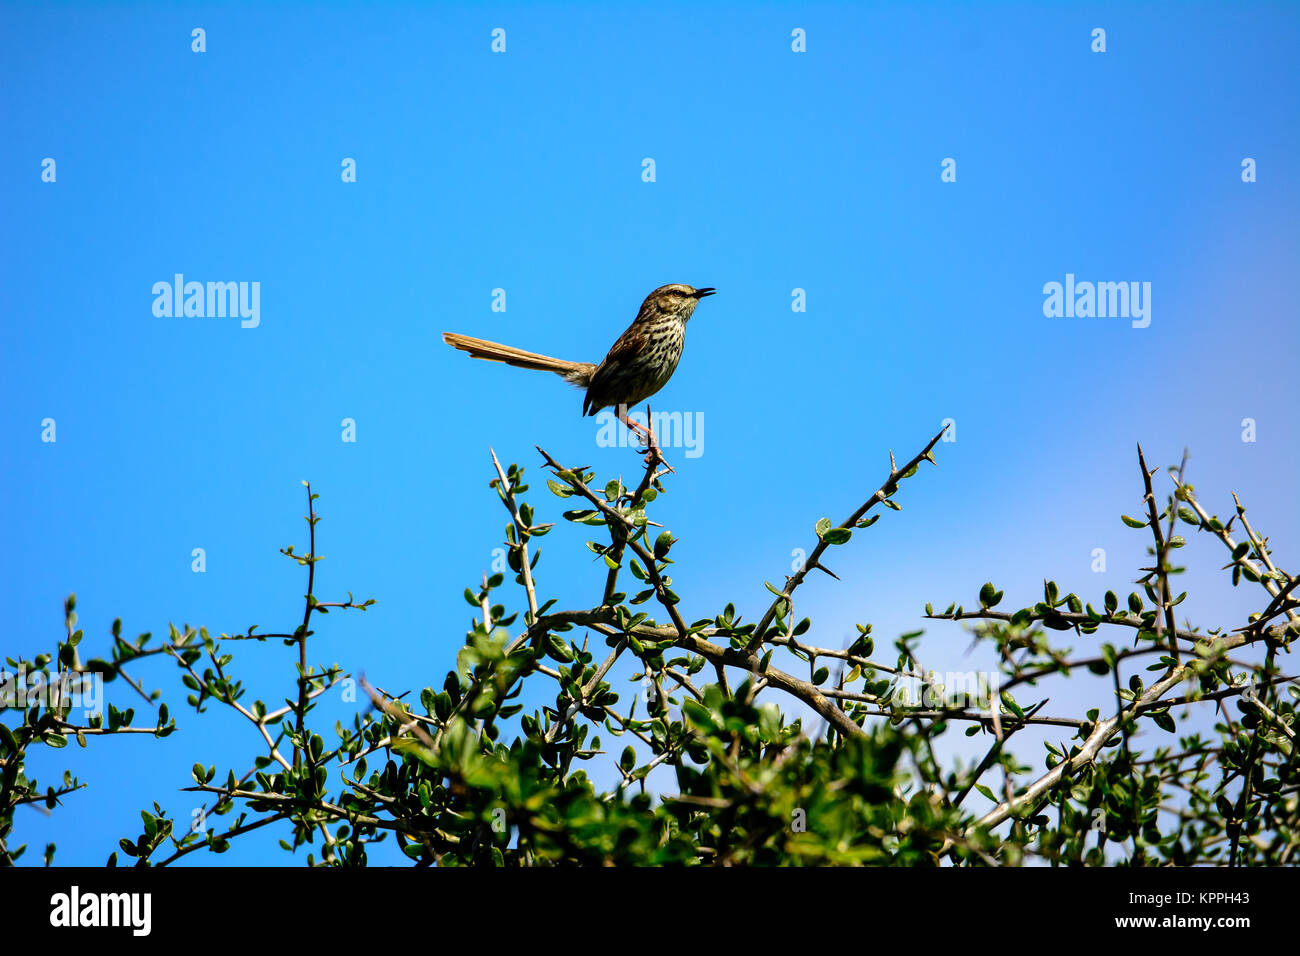 Cape mocking bird at the top of a tree - Stock Image